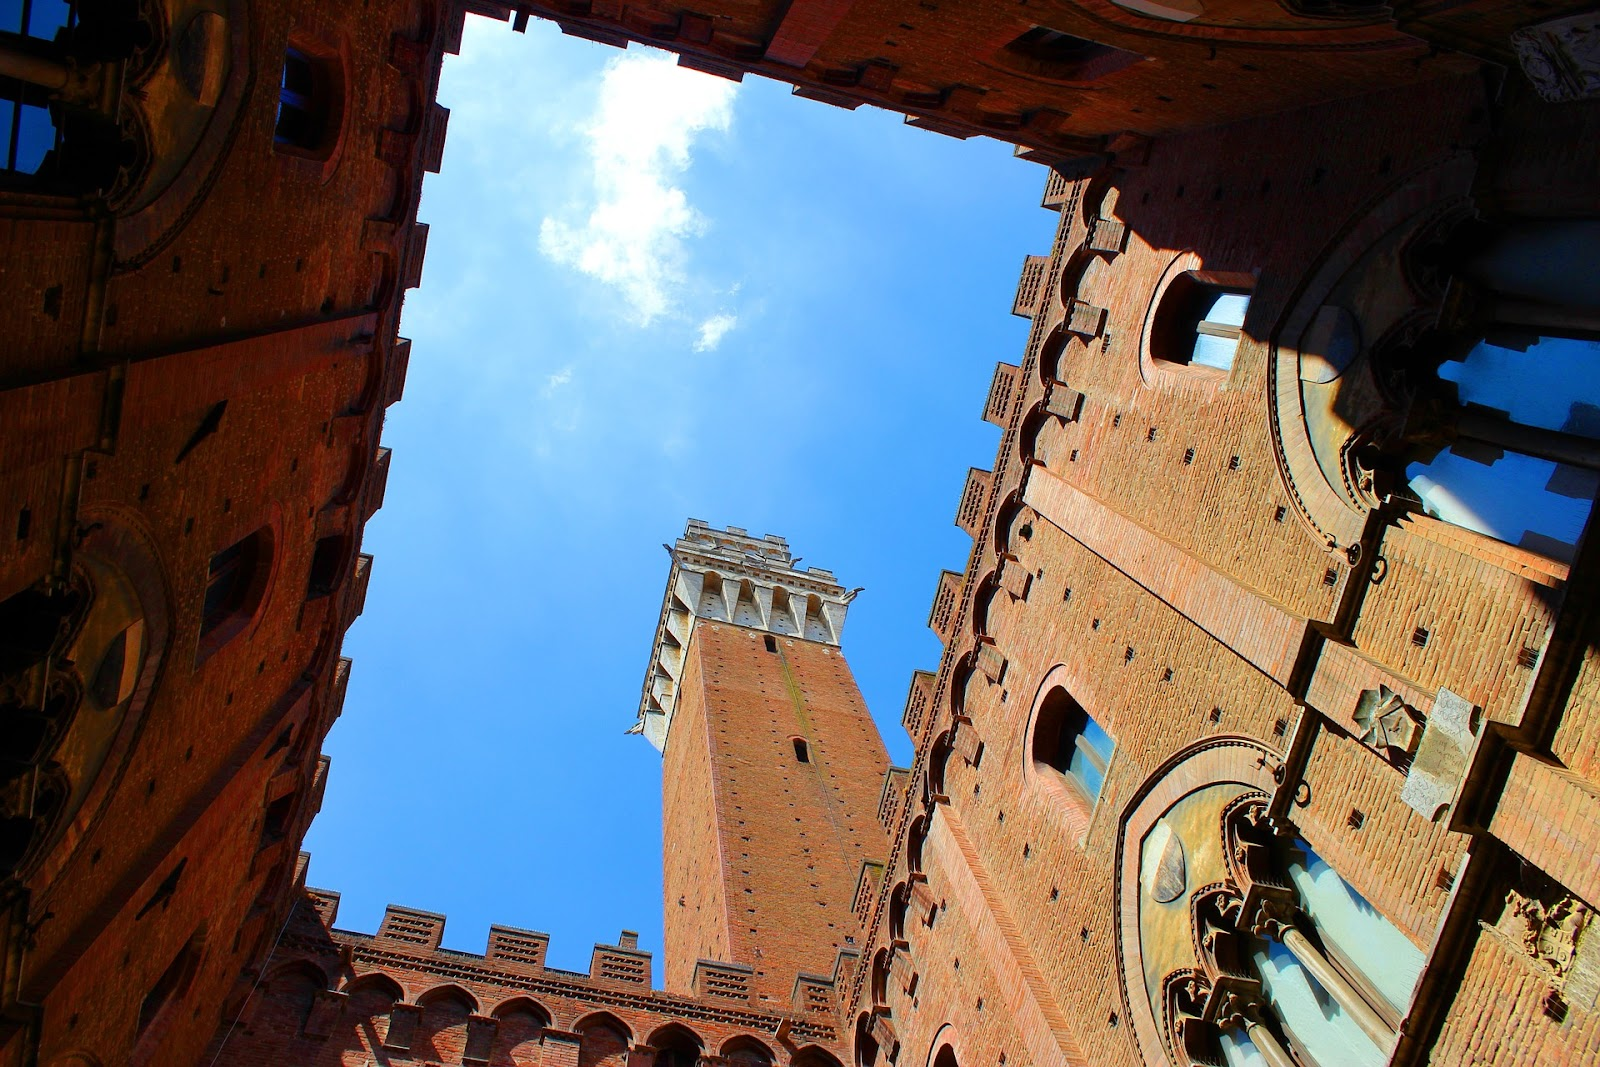 torre del mangia red brick medieval tower symnetrical photo seen from nearby square in siena italy